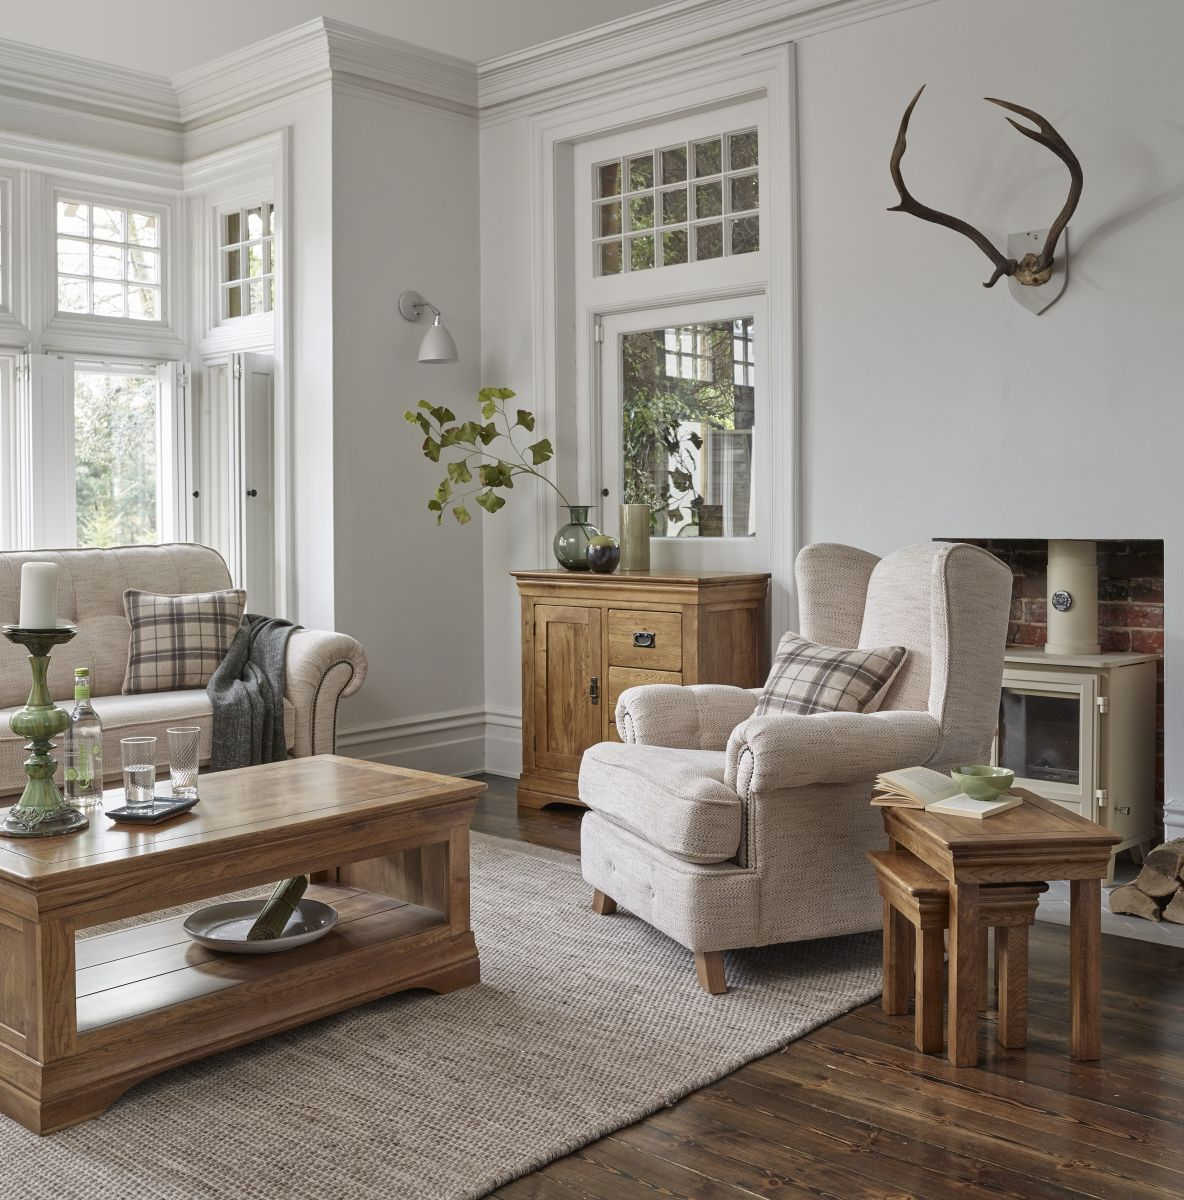 Choosing The Right Living Room Furniture For Your Style Oak Furniture Land Cosy Living Room Oak Furniture Living Room Neutral Living Room Design